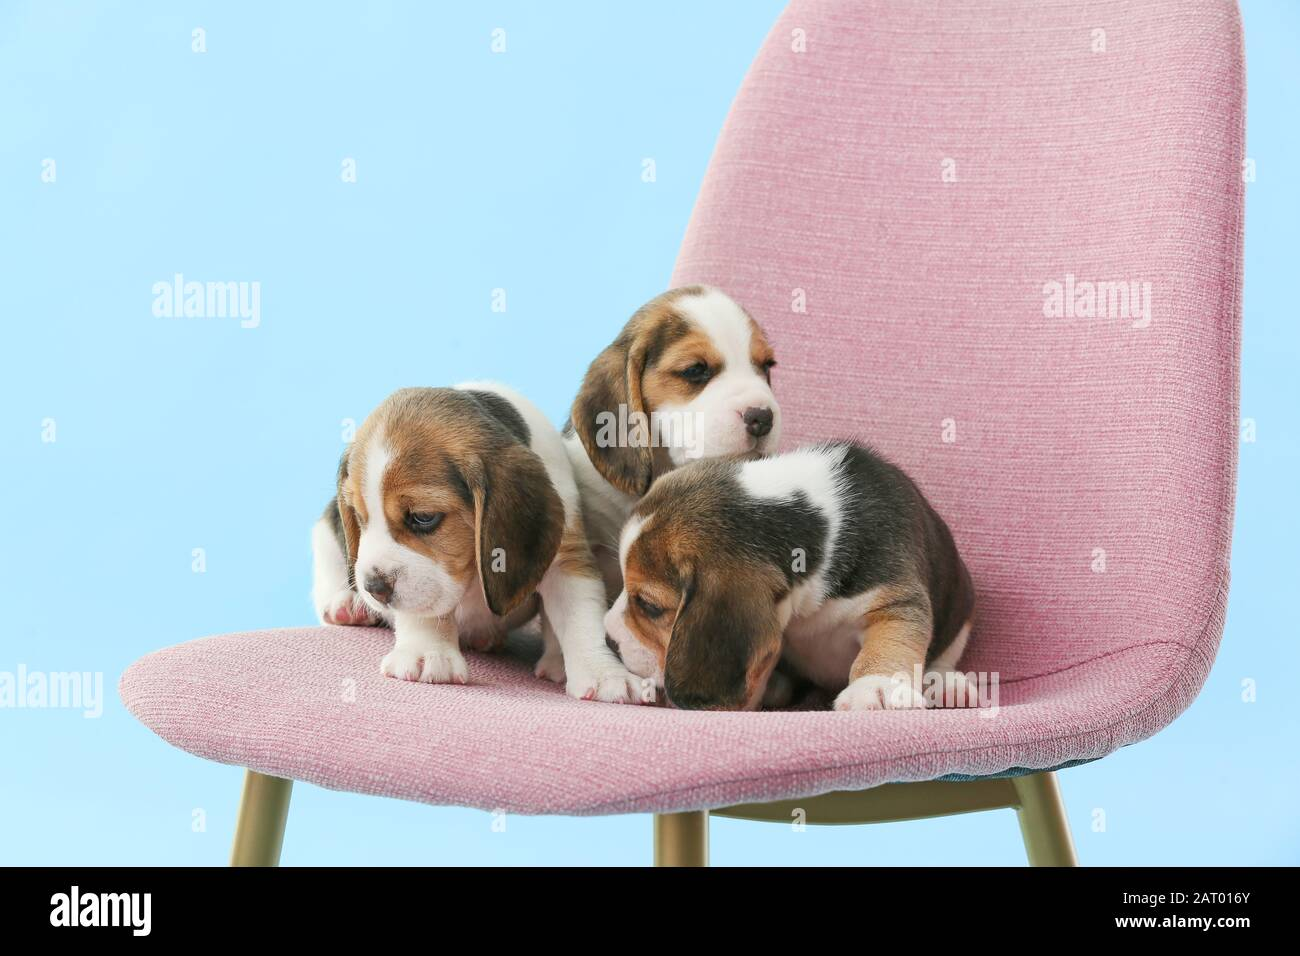 Cute Beagle Puppies On Chair Against Color Background Stock Photo Alamy